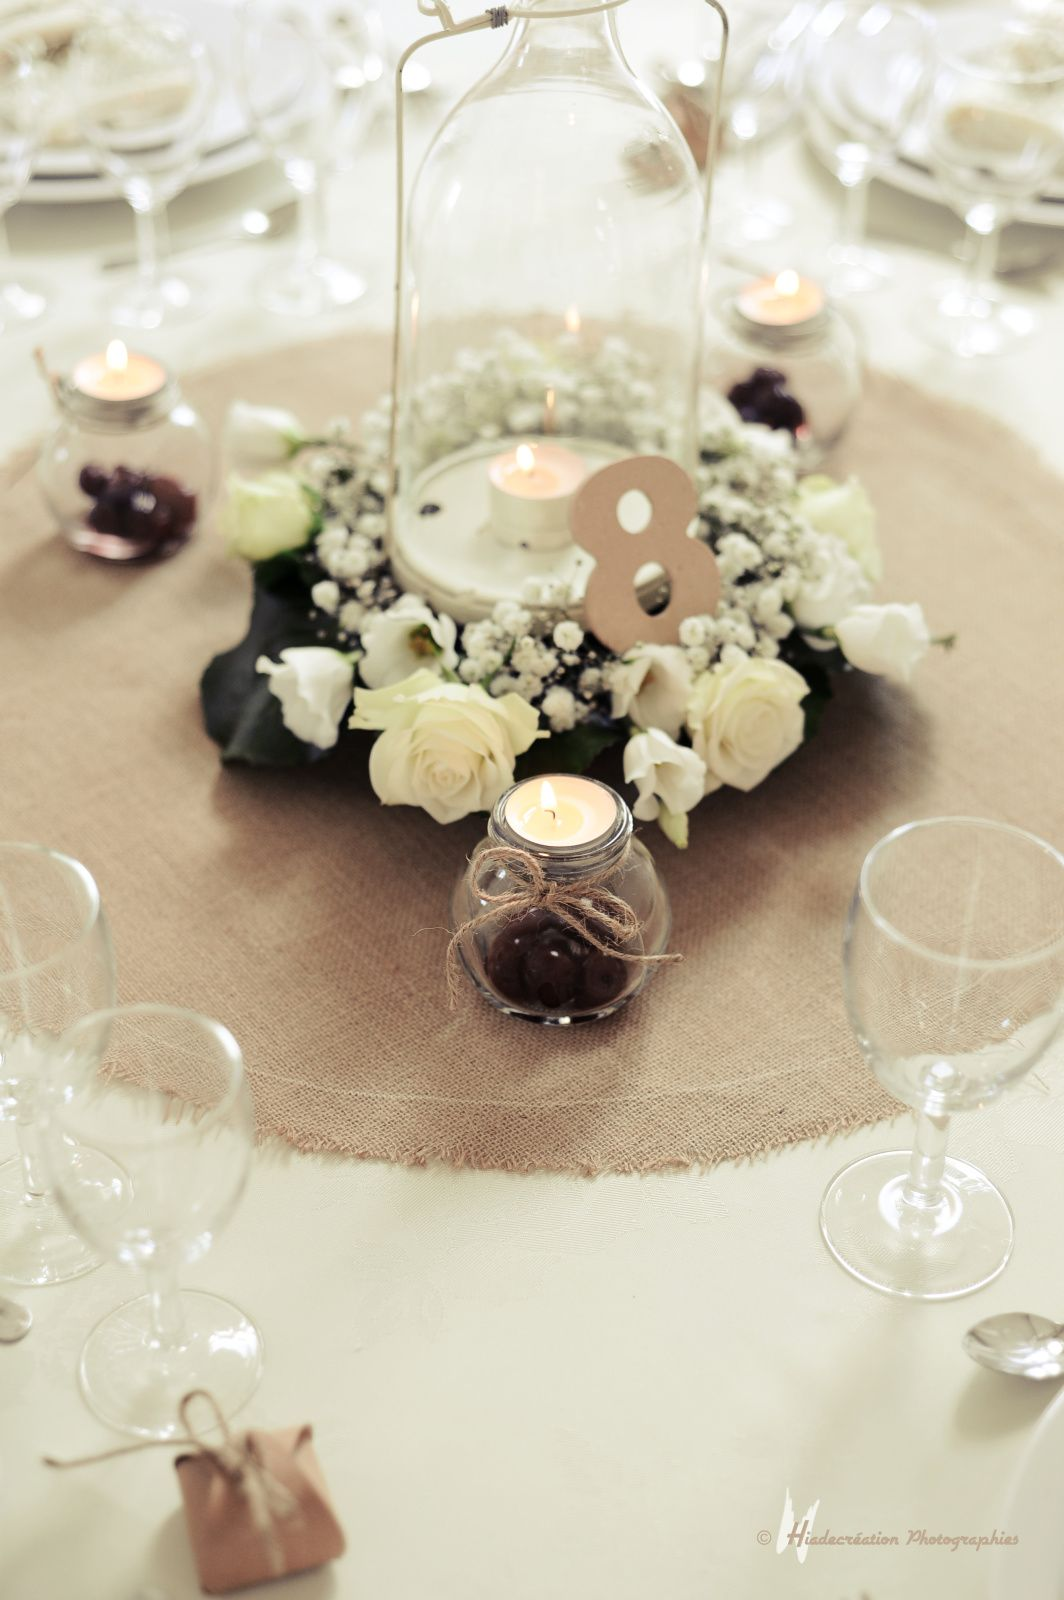 la d coration d une table ronde par cyane event design ainsi que le plan de table mariage deco. Black Bedroom Furniture Sets. Home Design Ideas